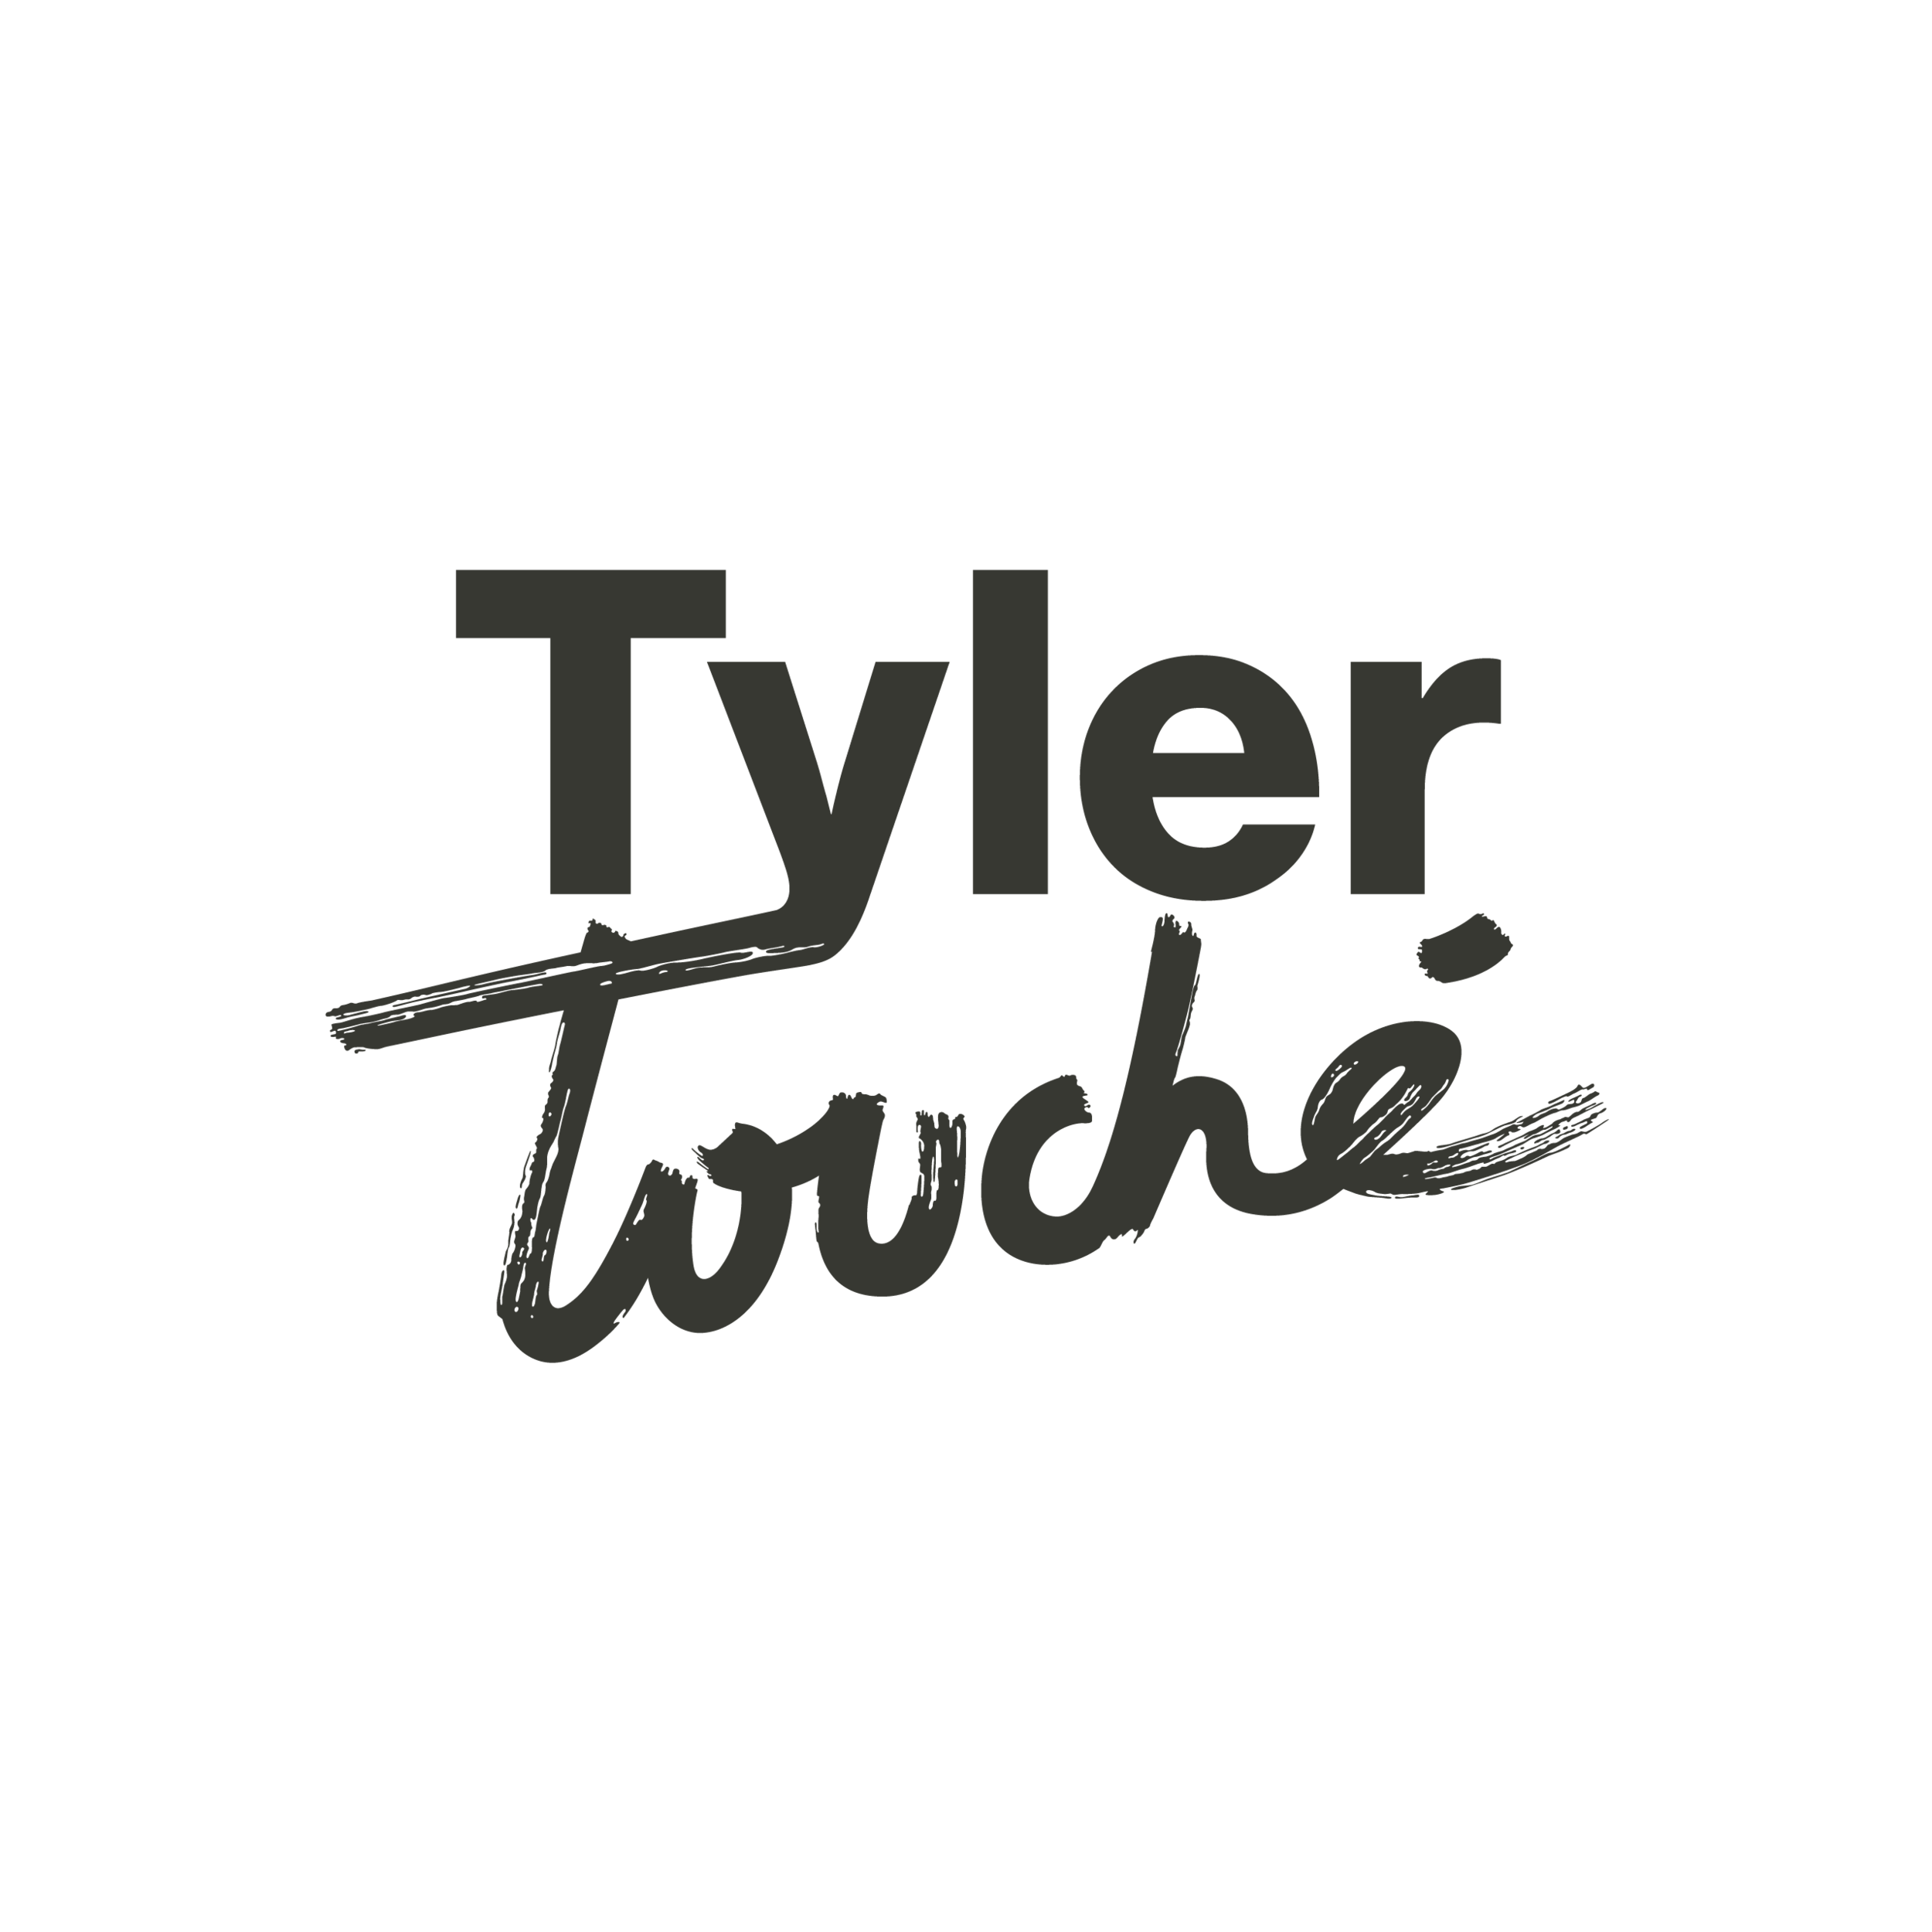 TylerTouche-2@2x.png